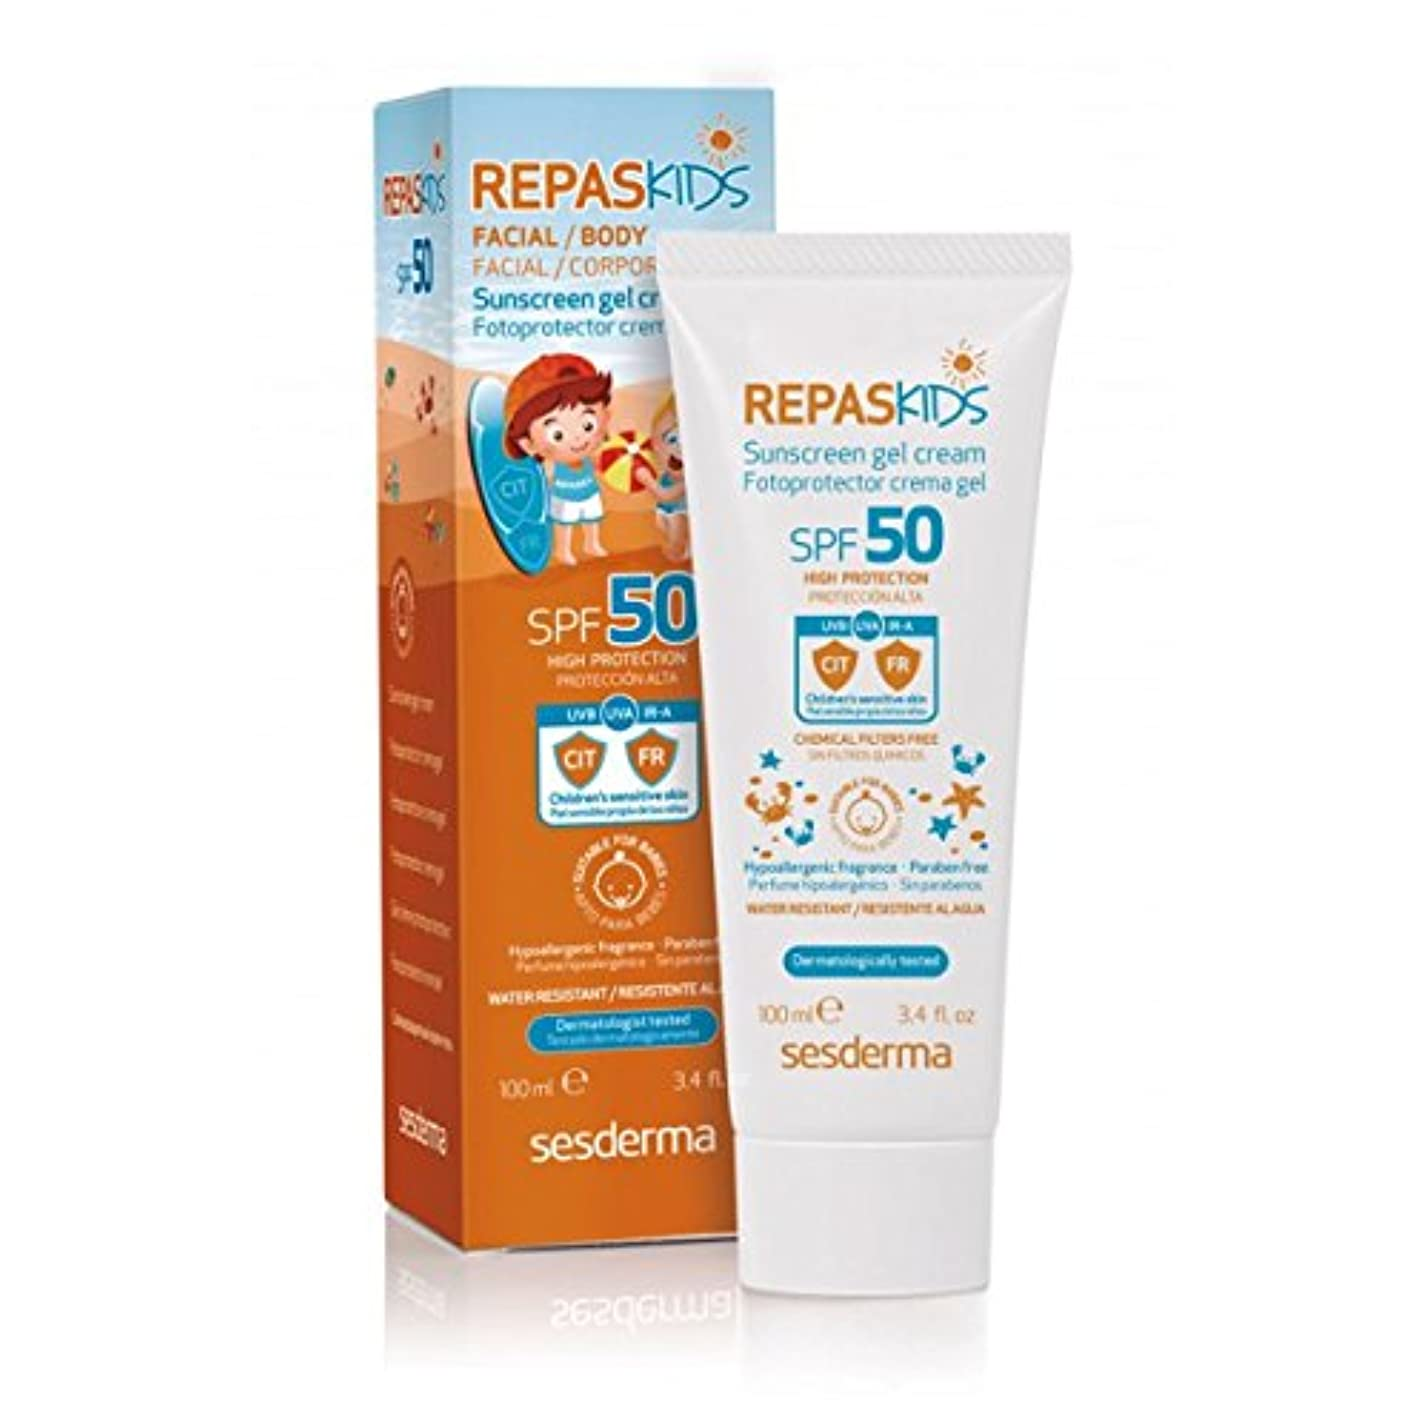 ハウス情緒的収入Sesderma Repaskids Sunscreen Gel Cream Spf50 100ml [並行輸入品]